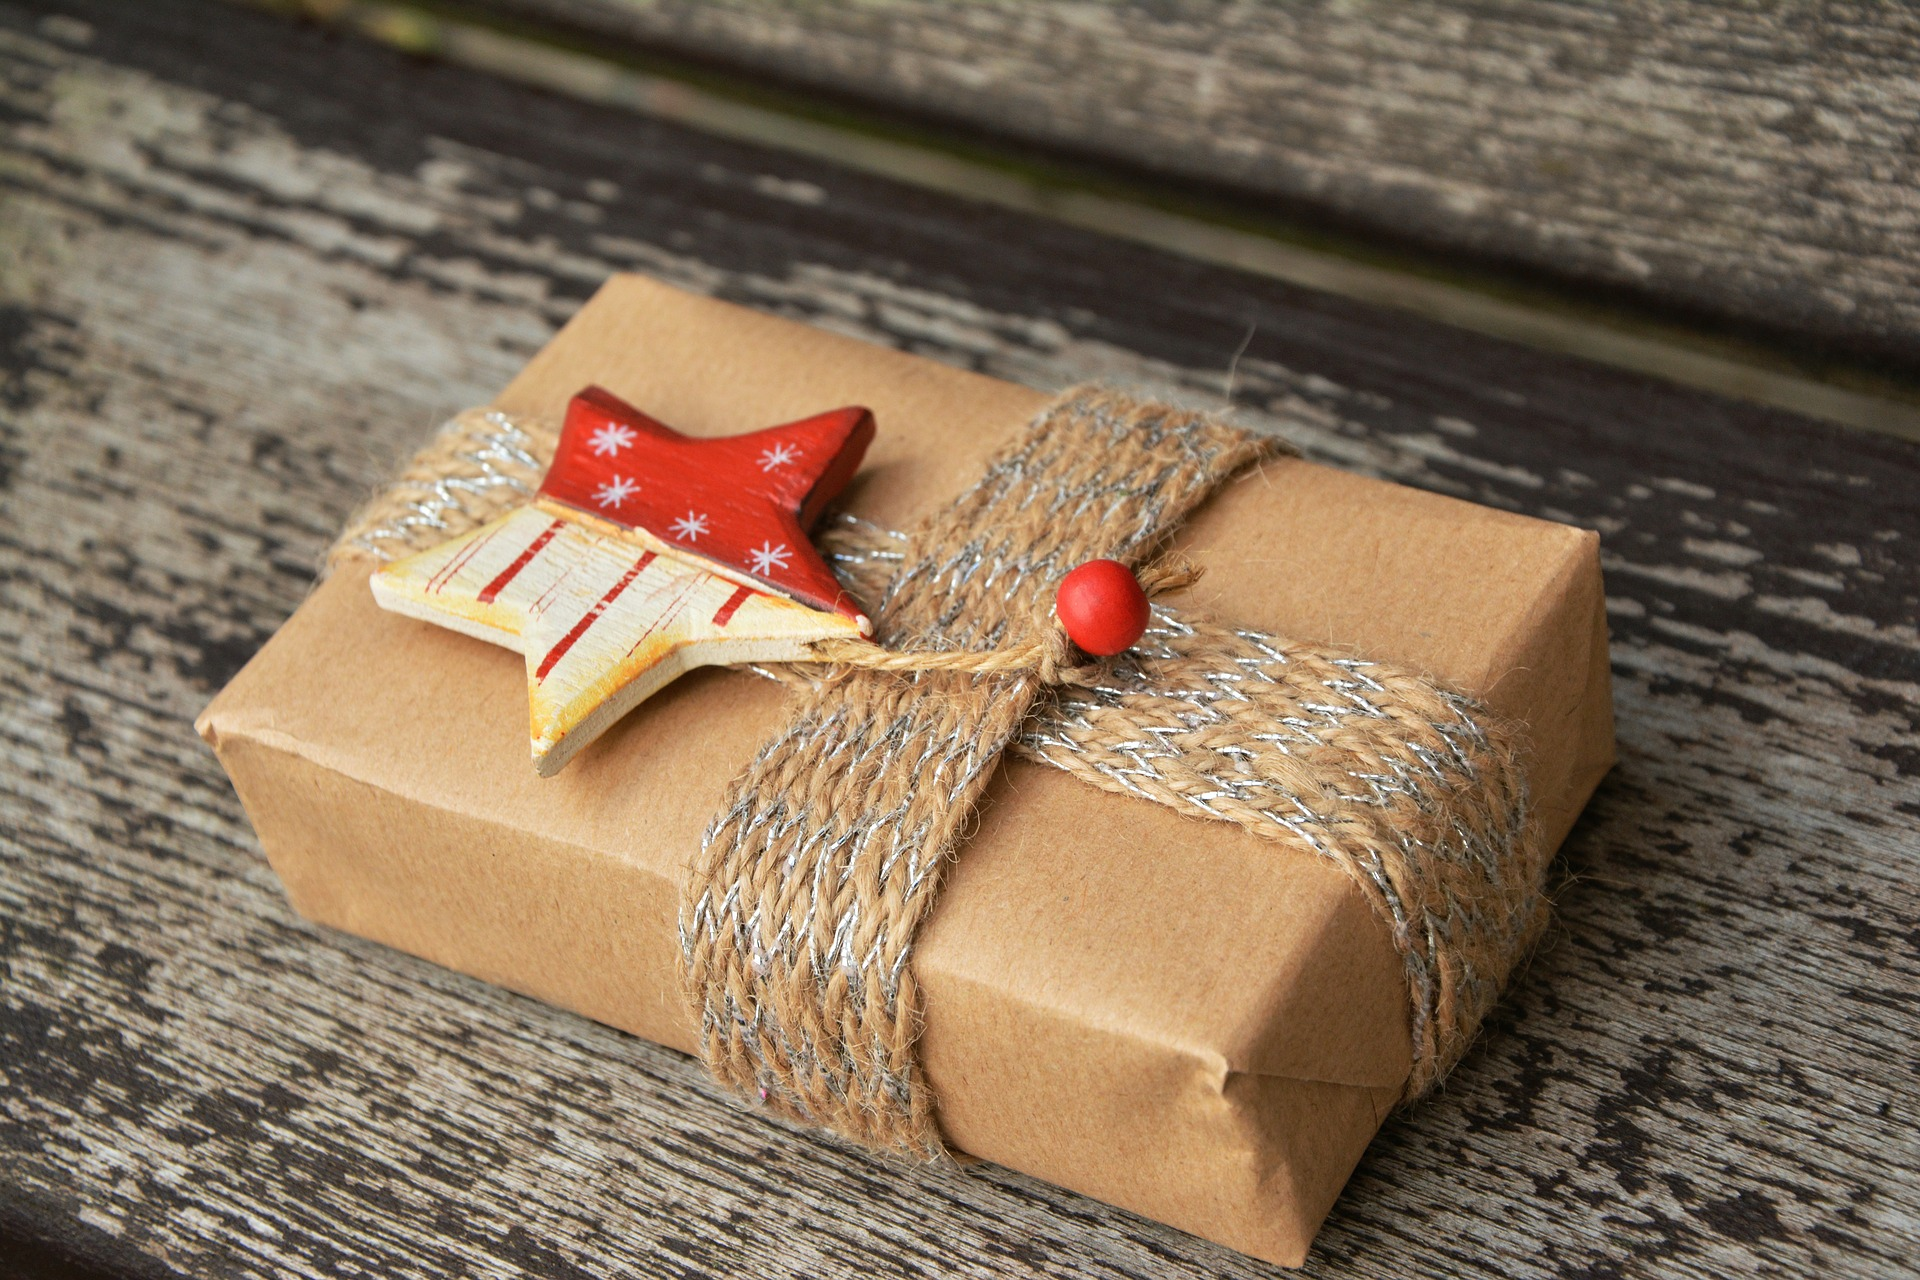 Present delivery